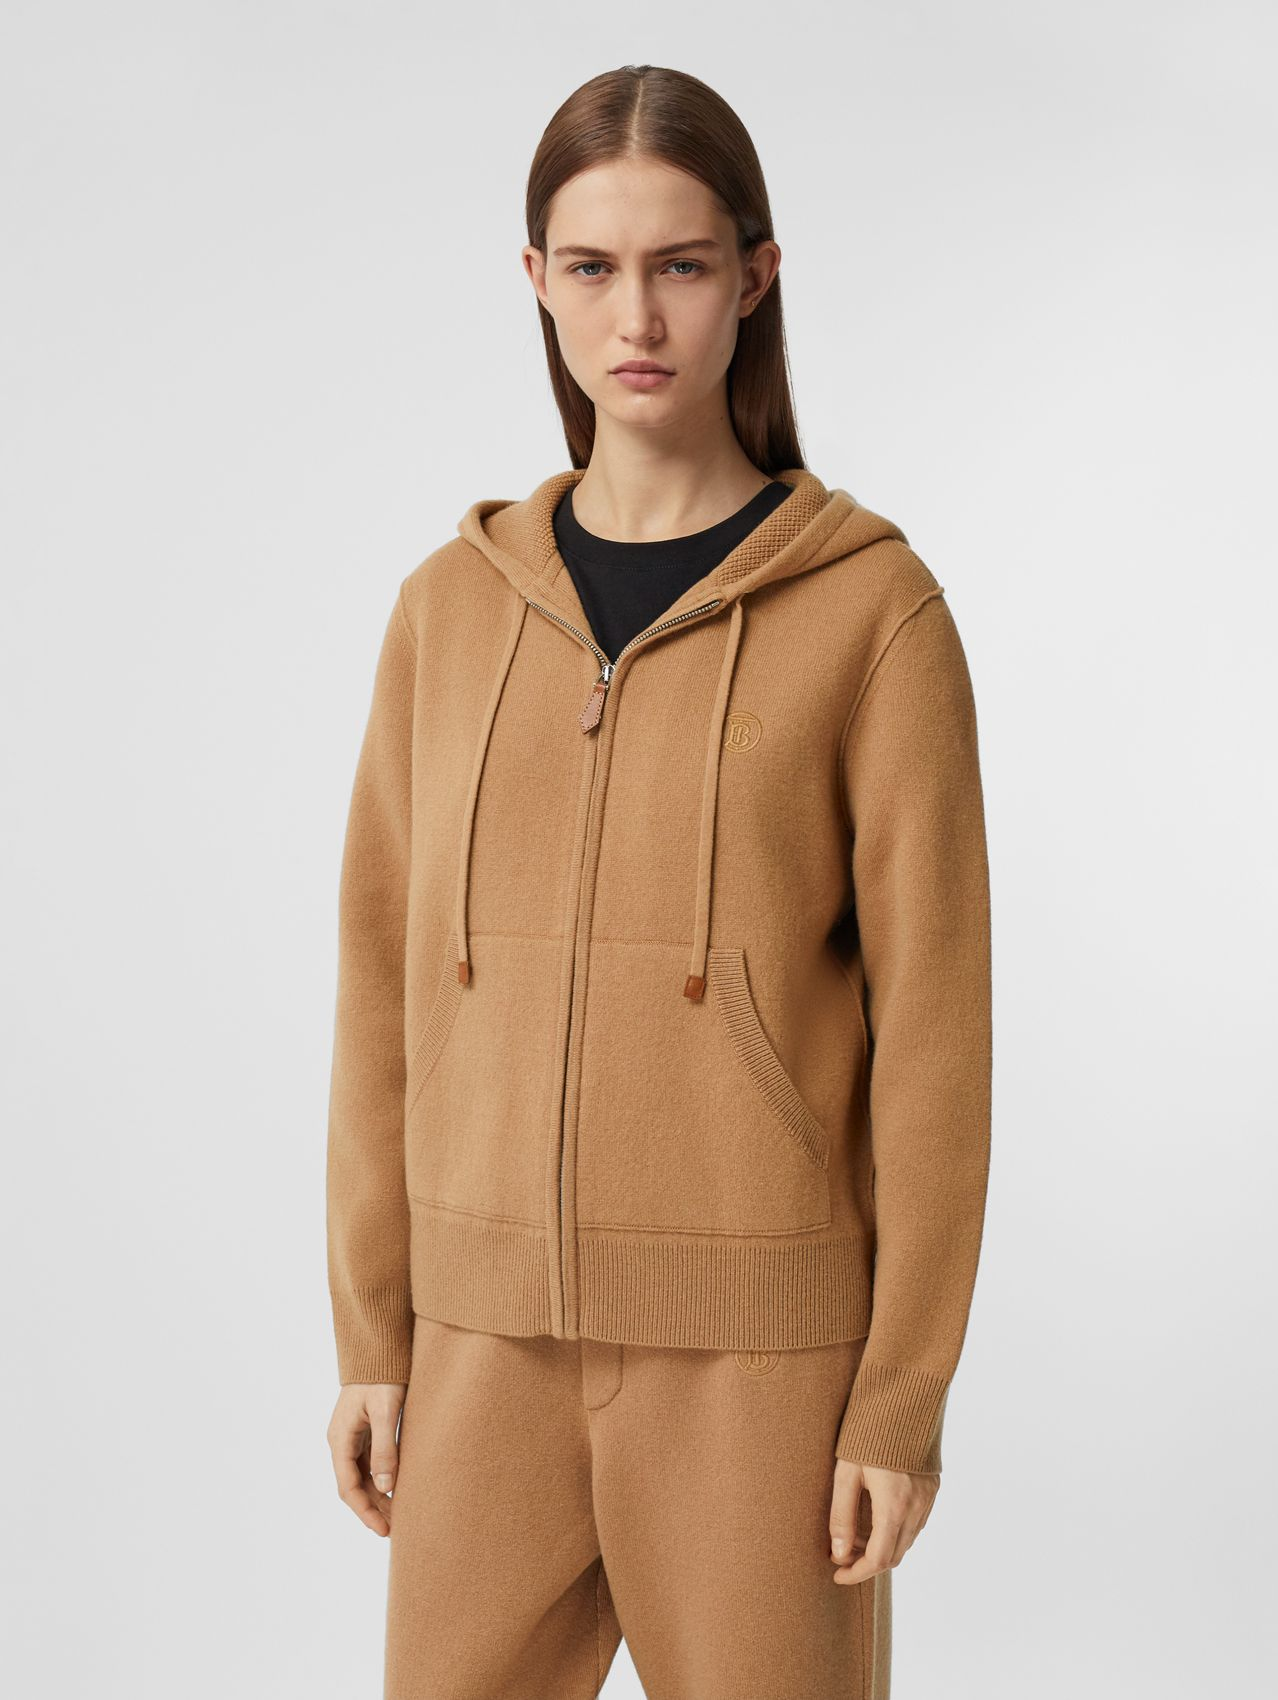 Monogram Motif Cashmere Blend Hooded Top in Camel